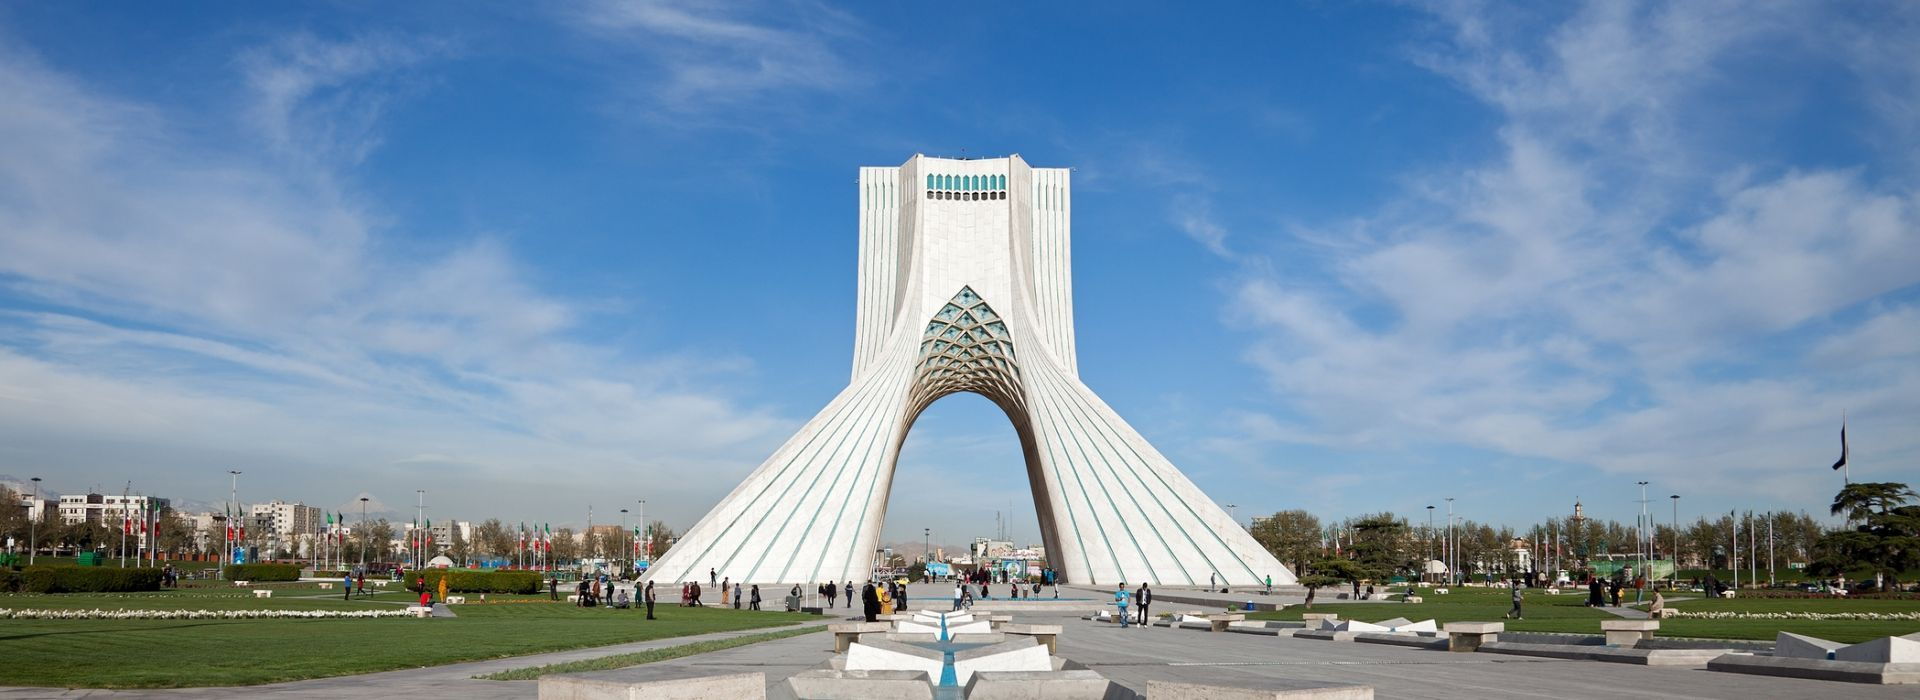 Iran Tours and Trips to Iran